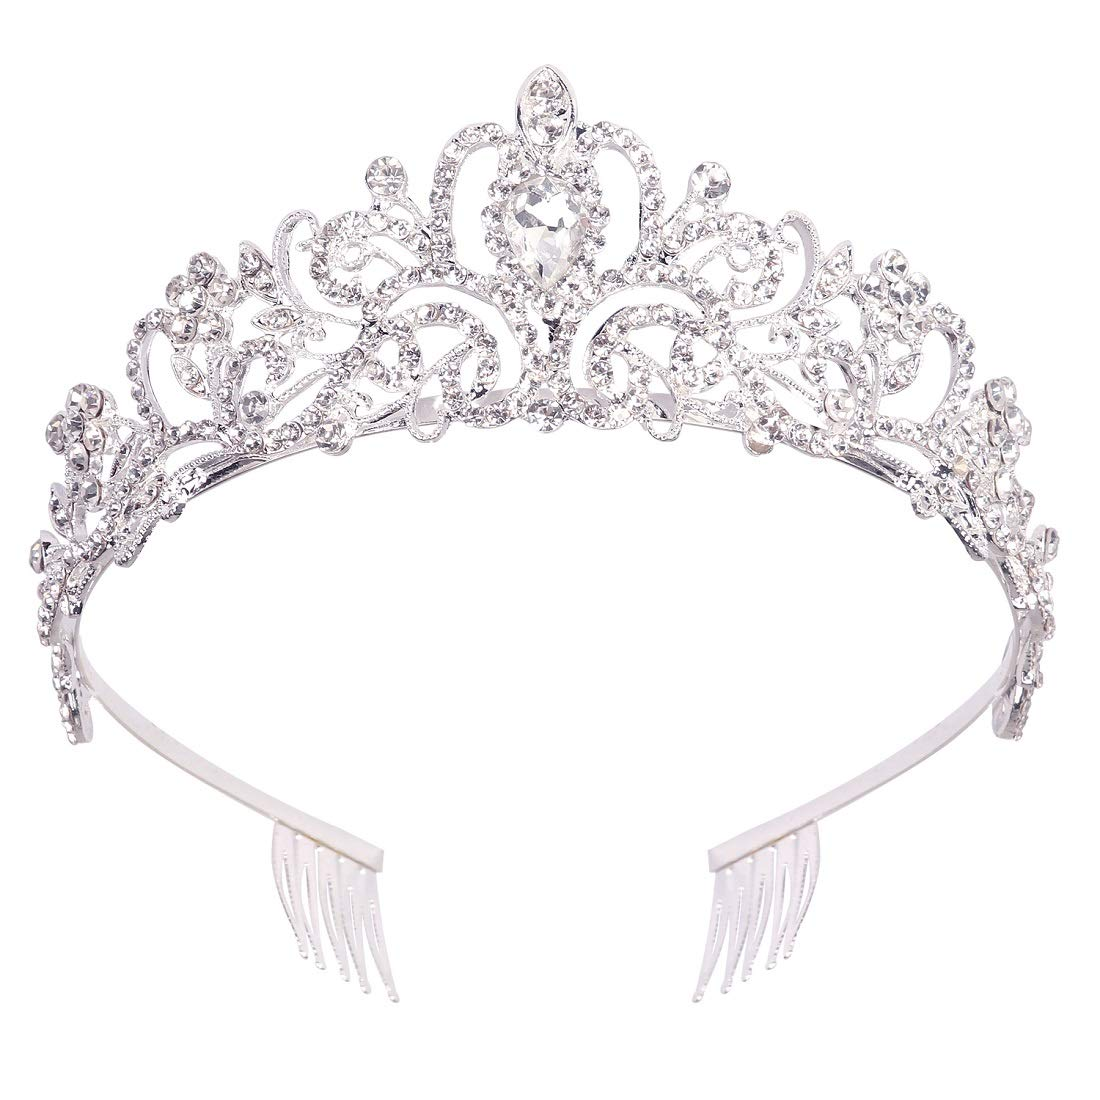 Didder Silver Crystal Tiara Crown Headband Princess Elegant Crown with combs for Women Girls Bridal Wedding Prom Birthday Party